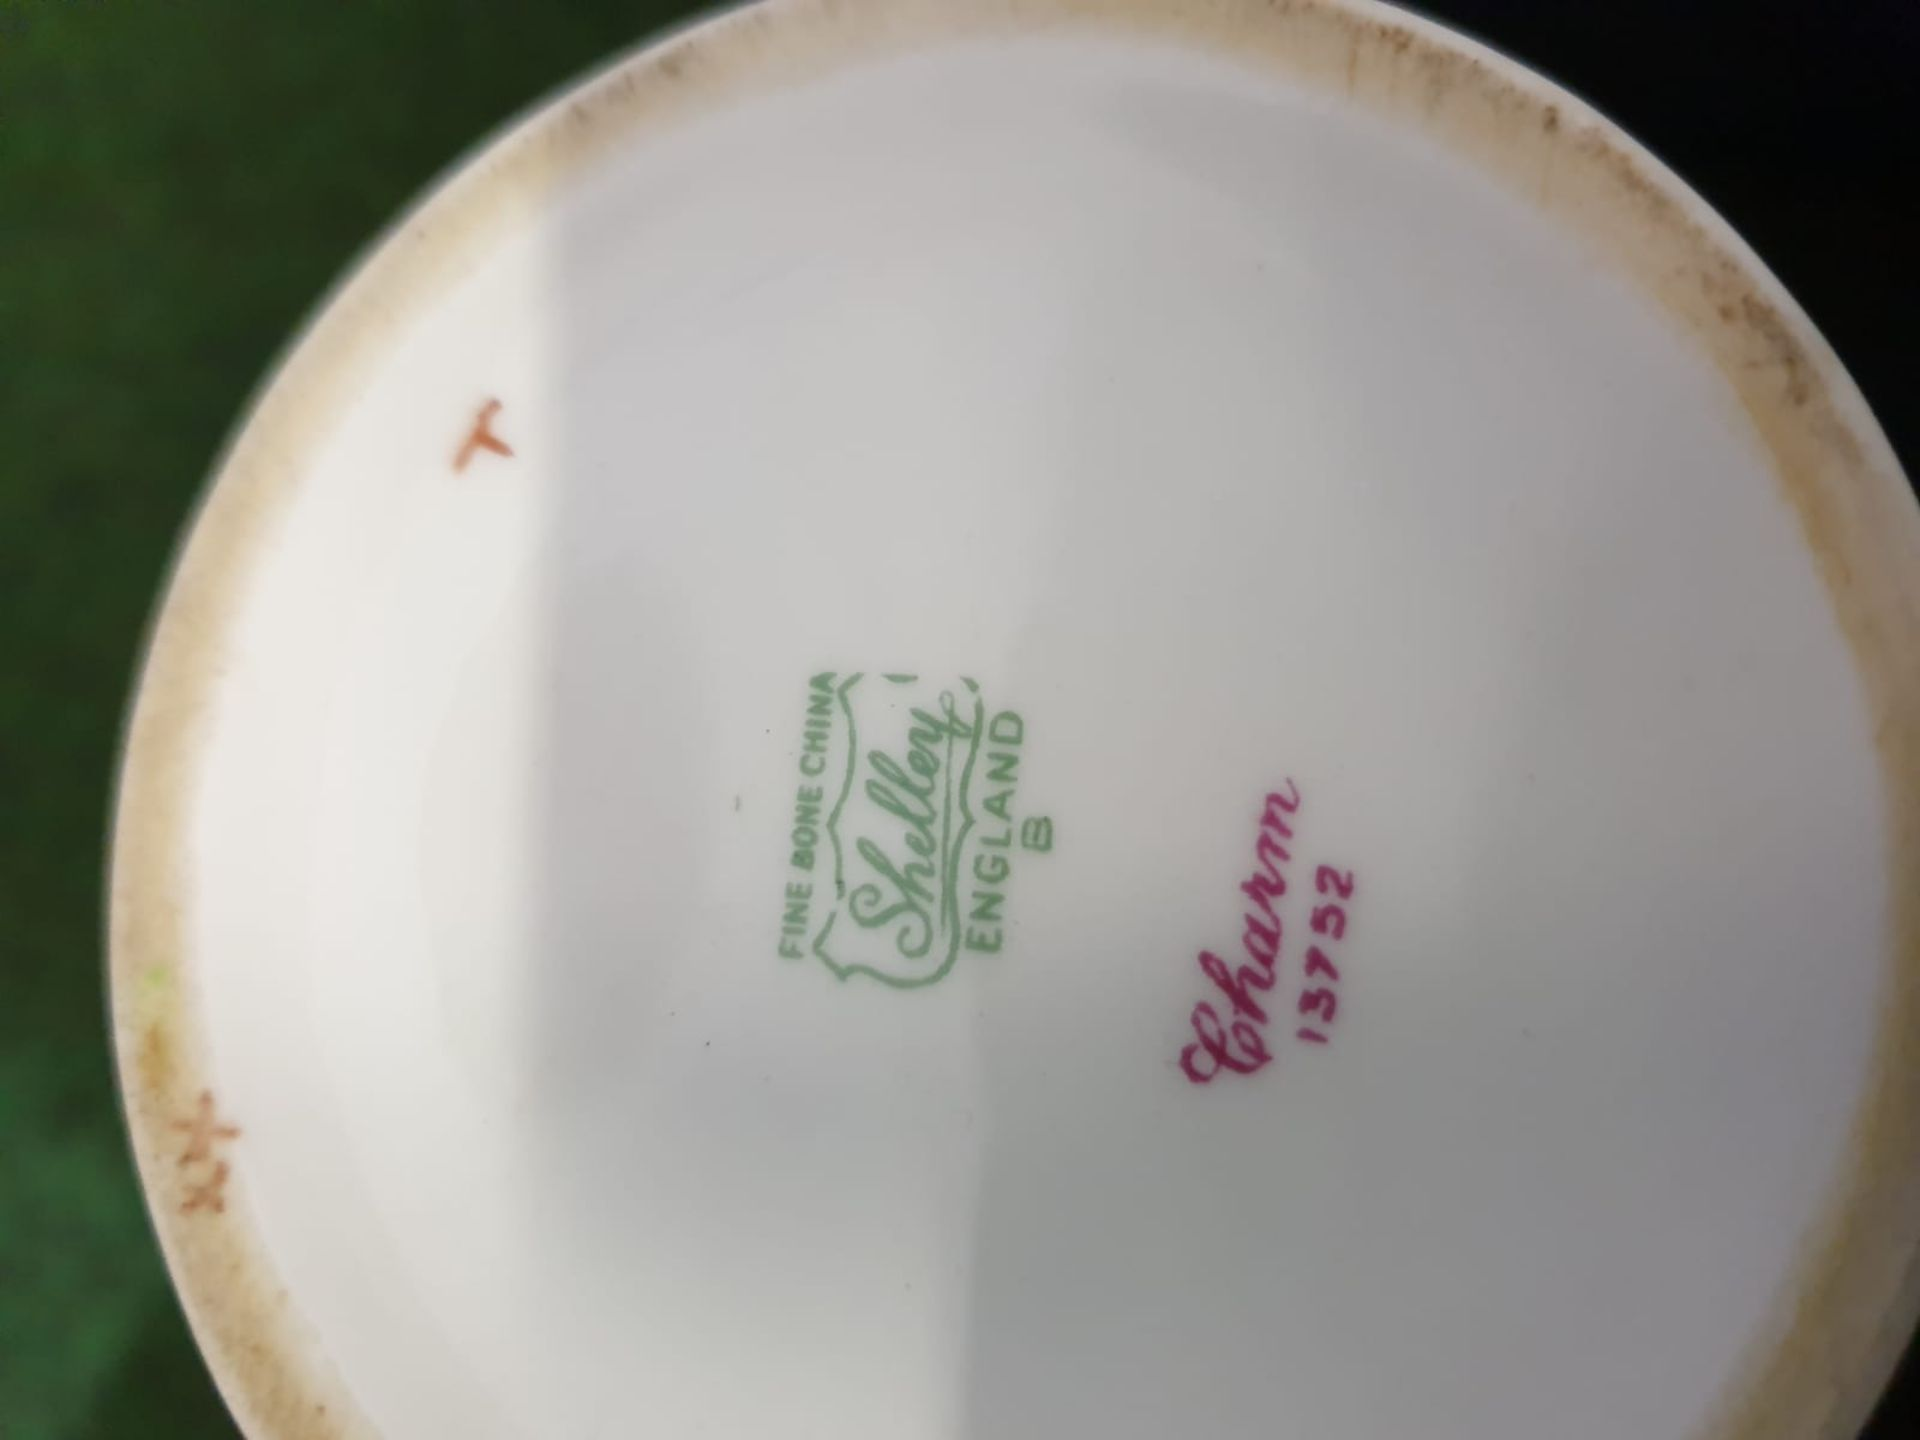 A Large quantity of tableware various patterns and manufacturers including Royal Doulton, Shelley, H - Image 7 of 15